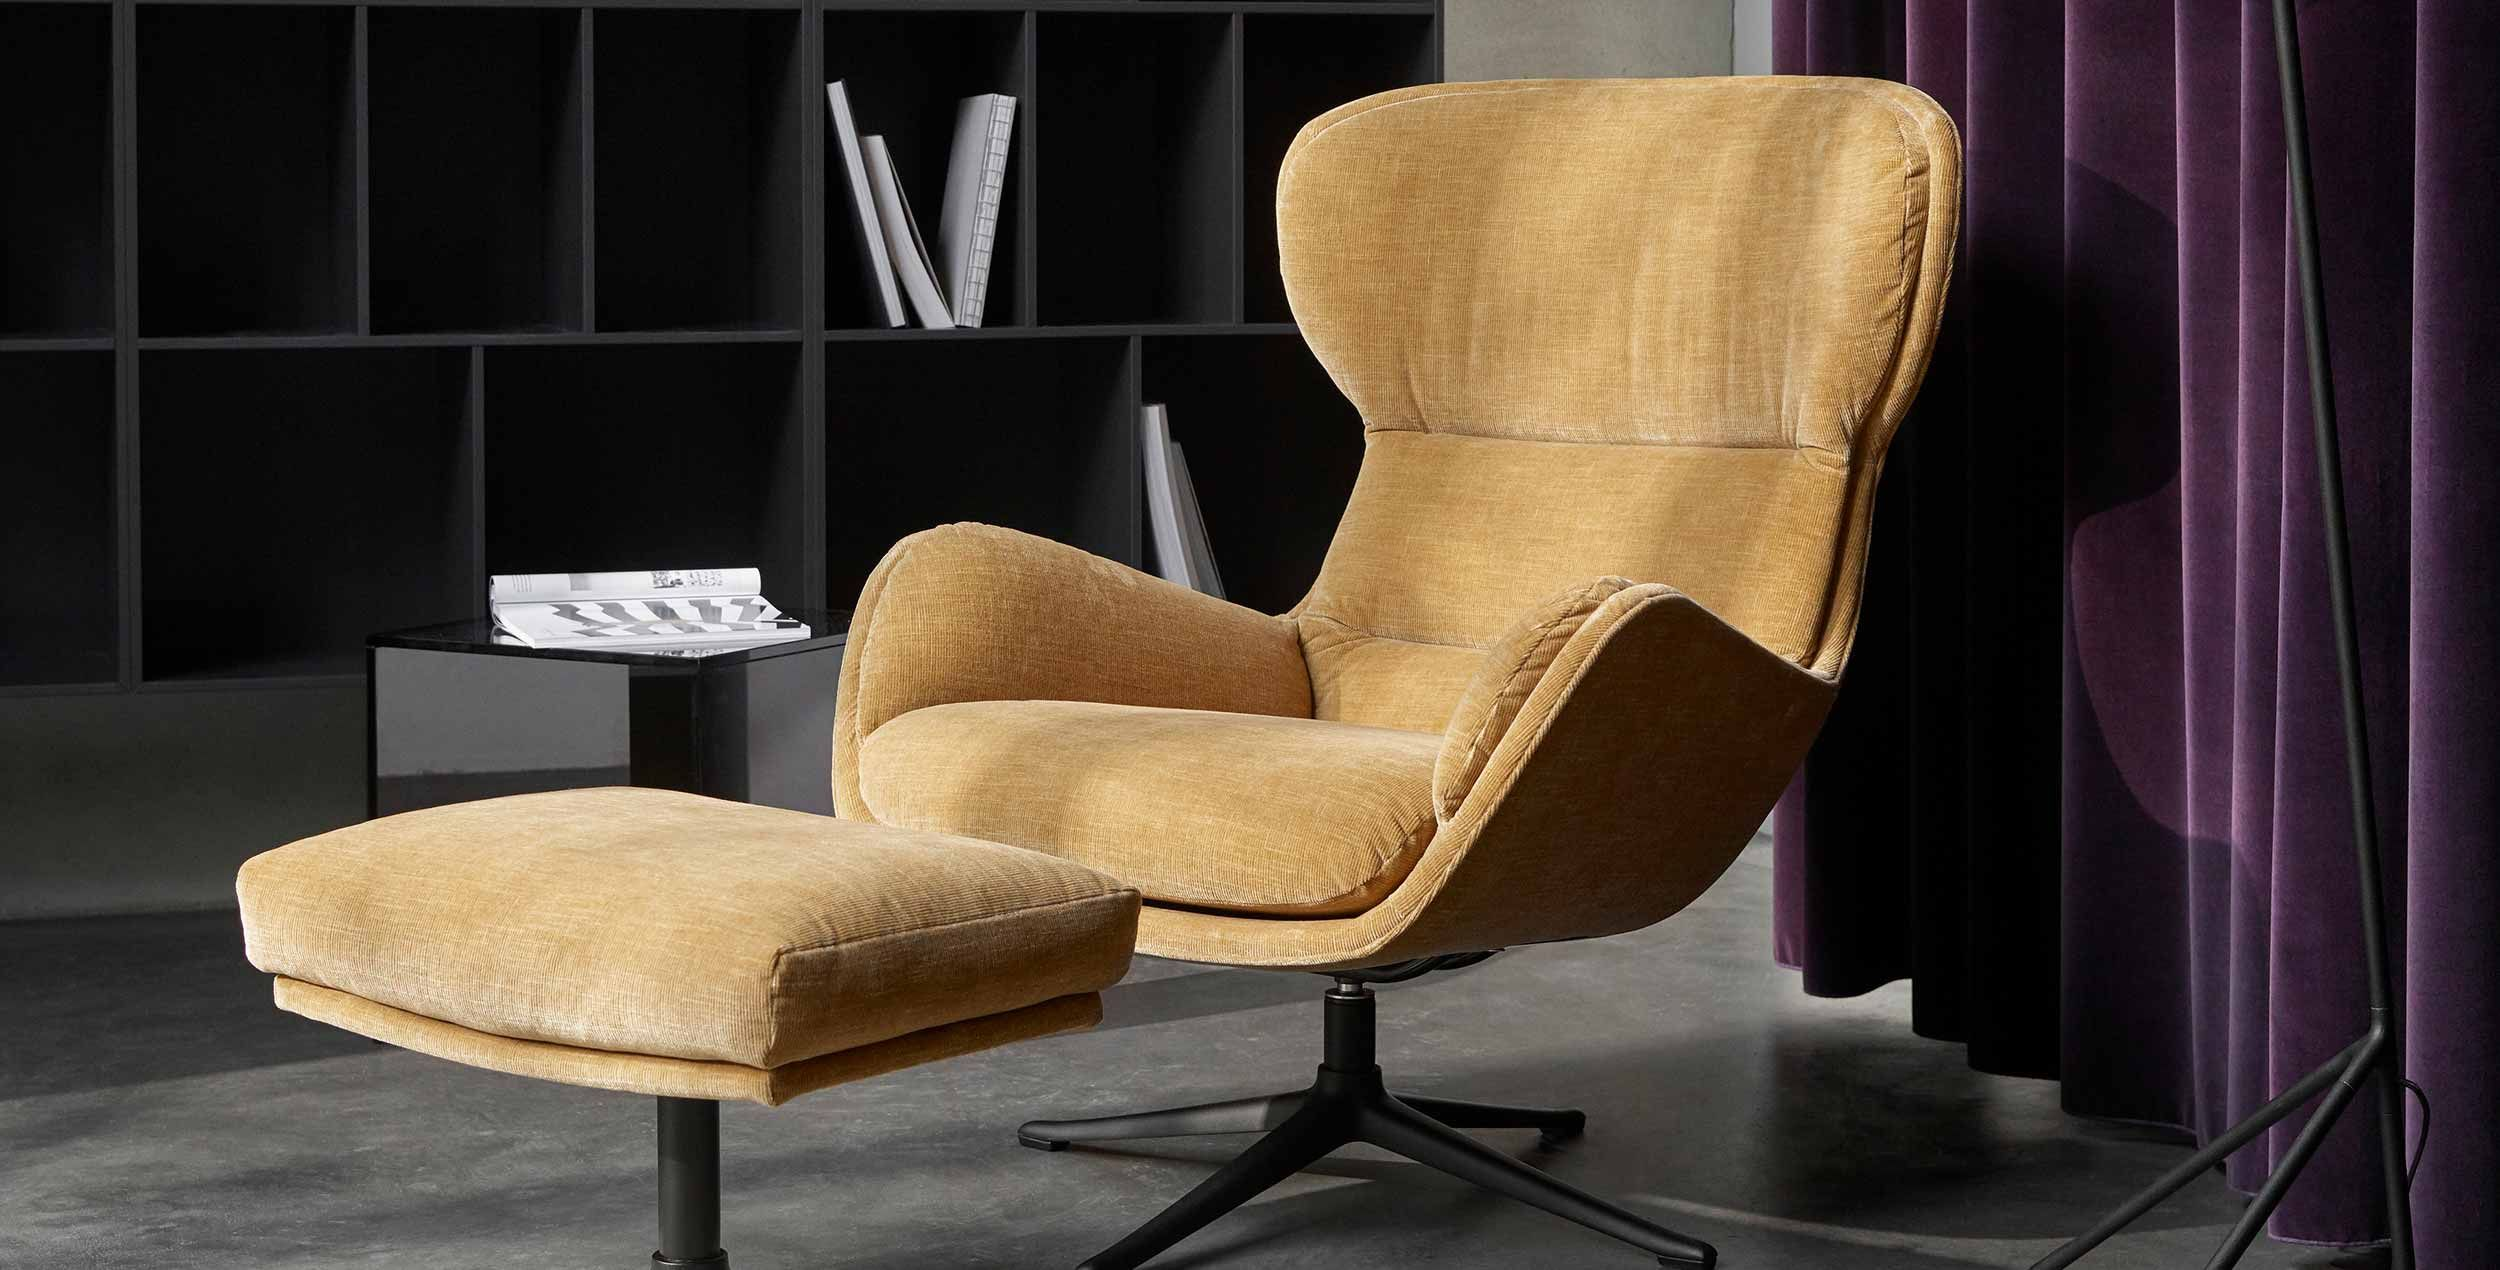 The queen or king of this set is our new Reno living chair and